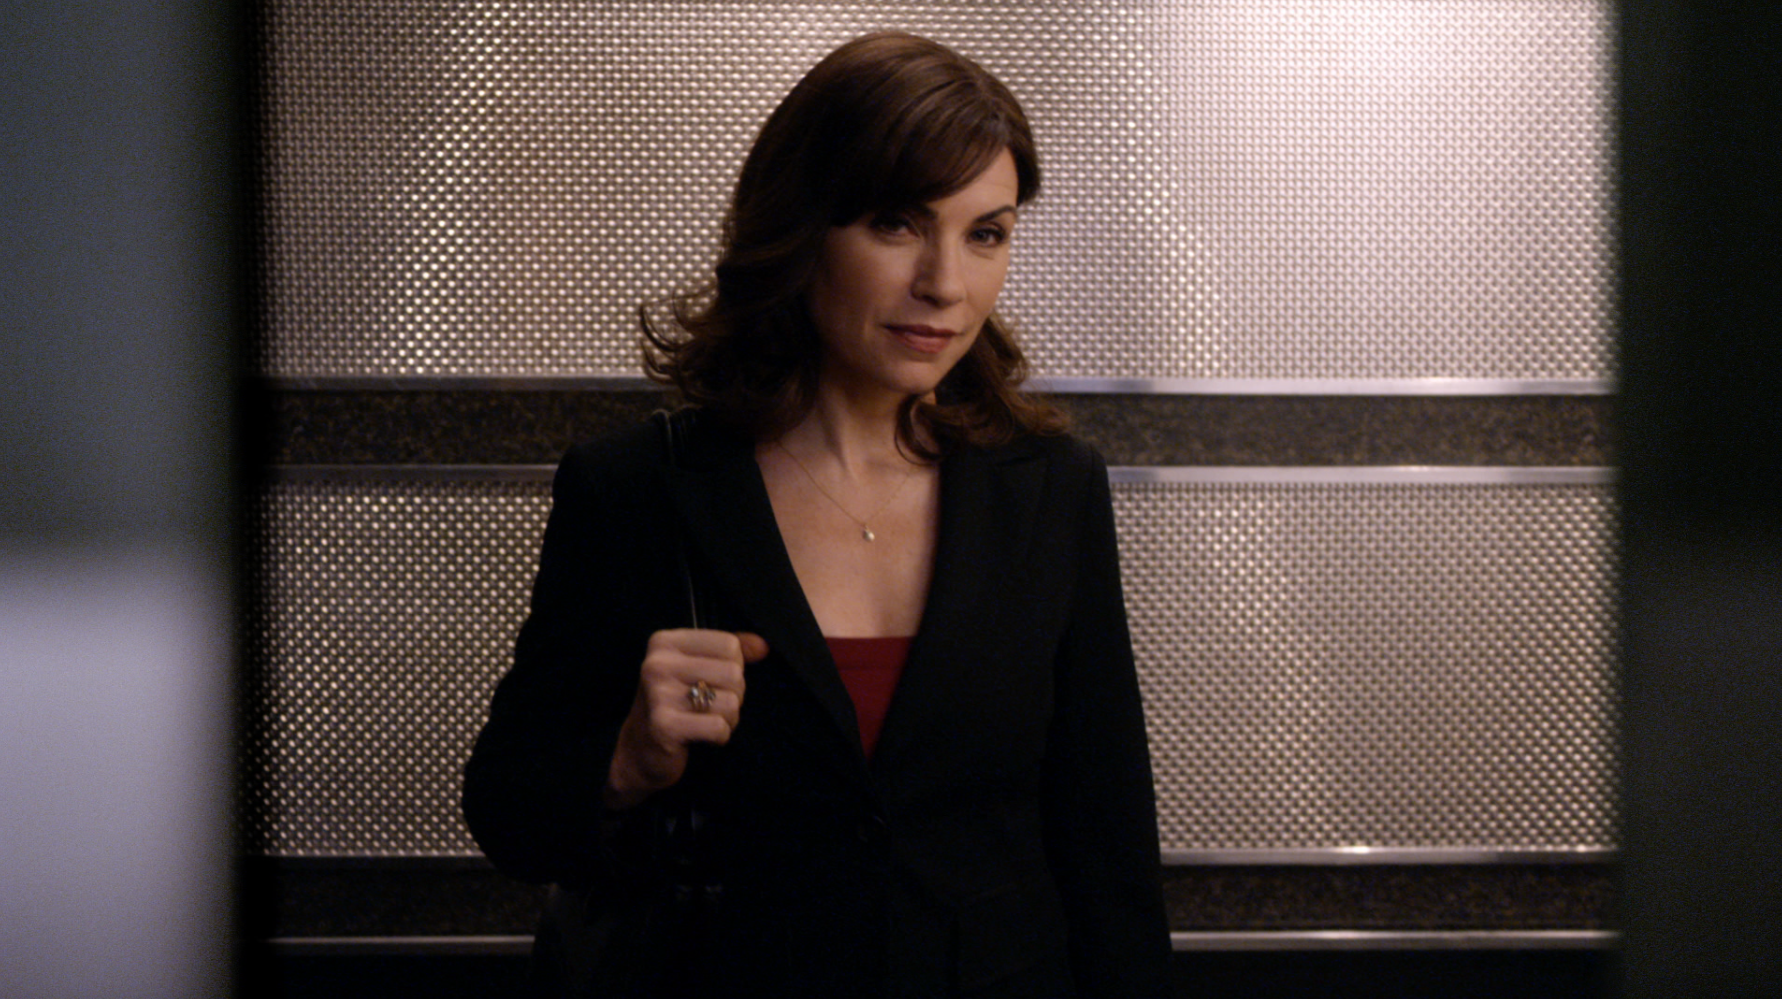 THE GOOD WIFE: GAMES OFFICE (TV30)